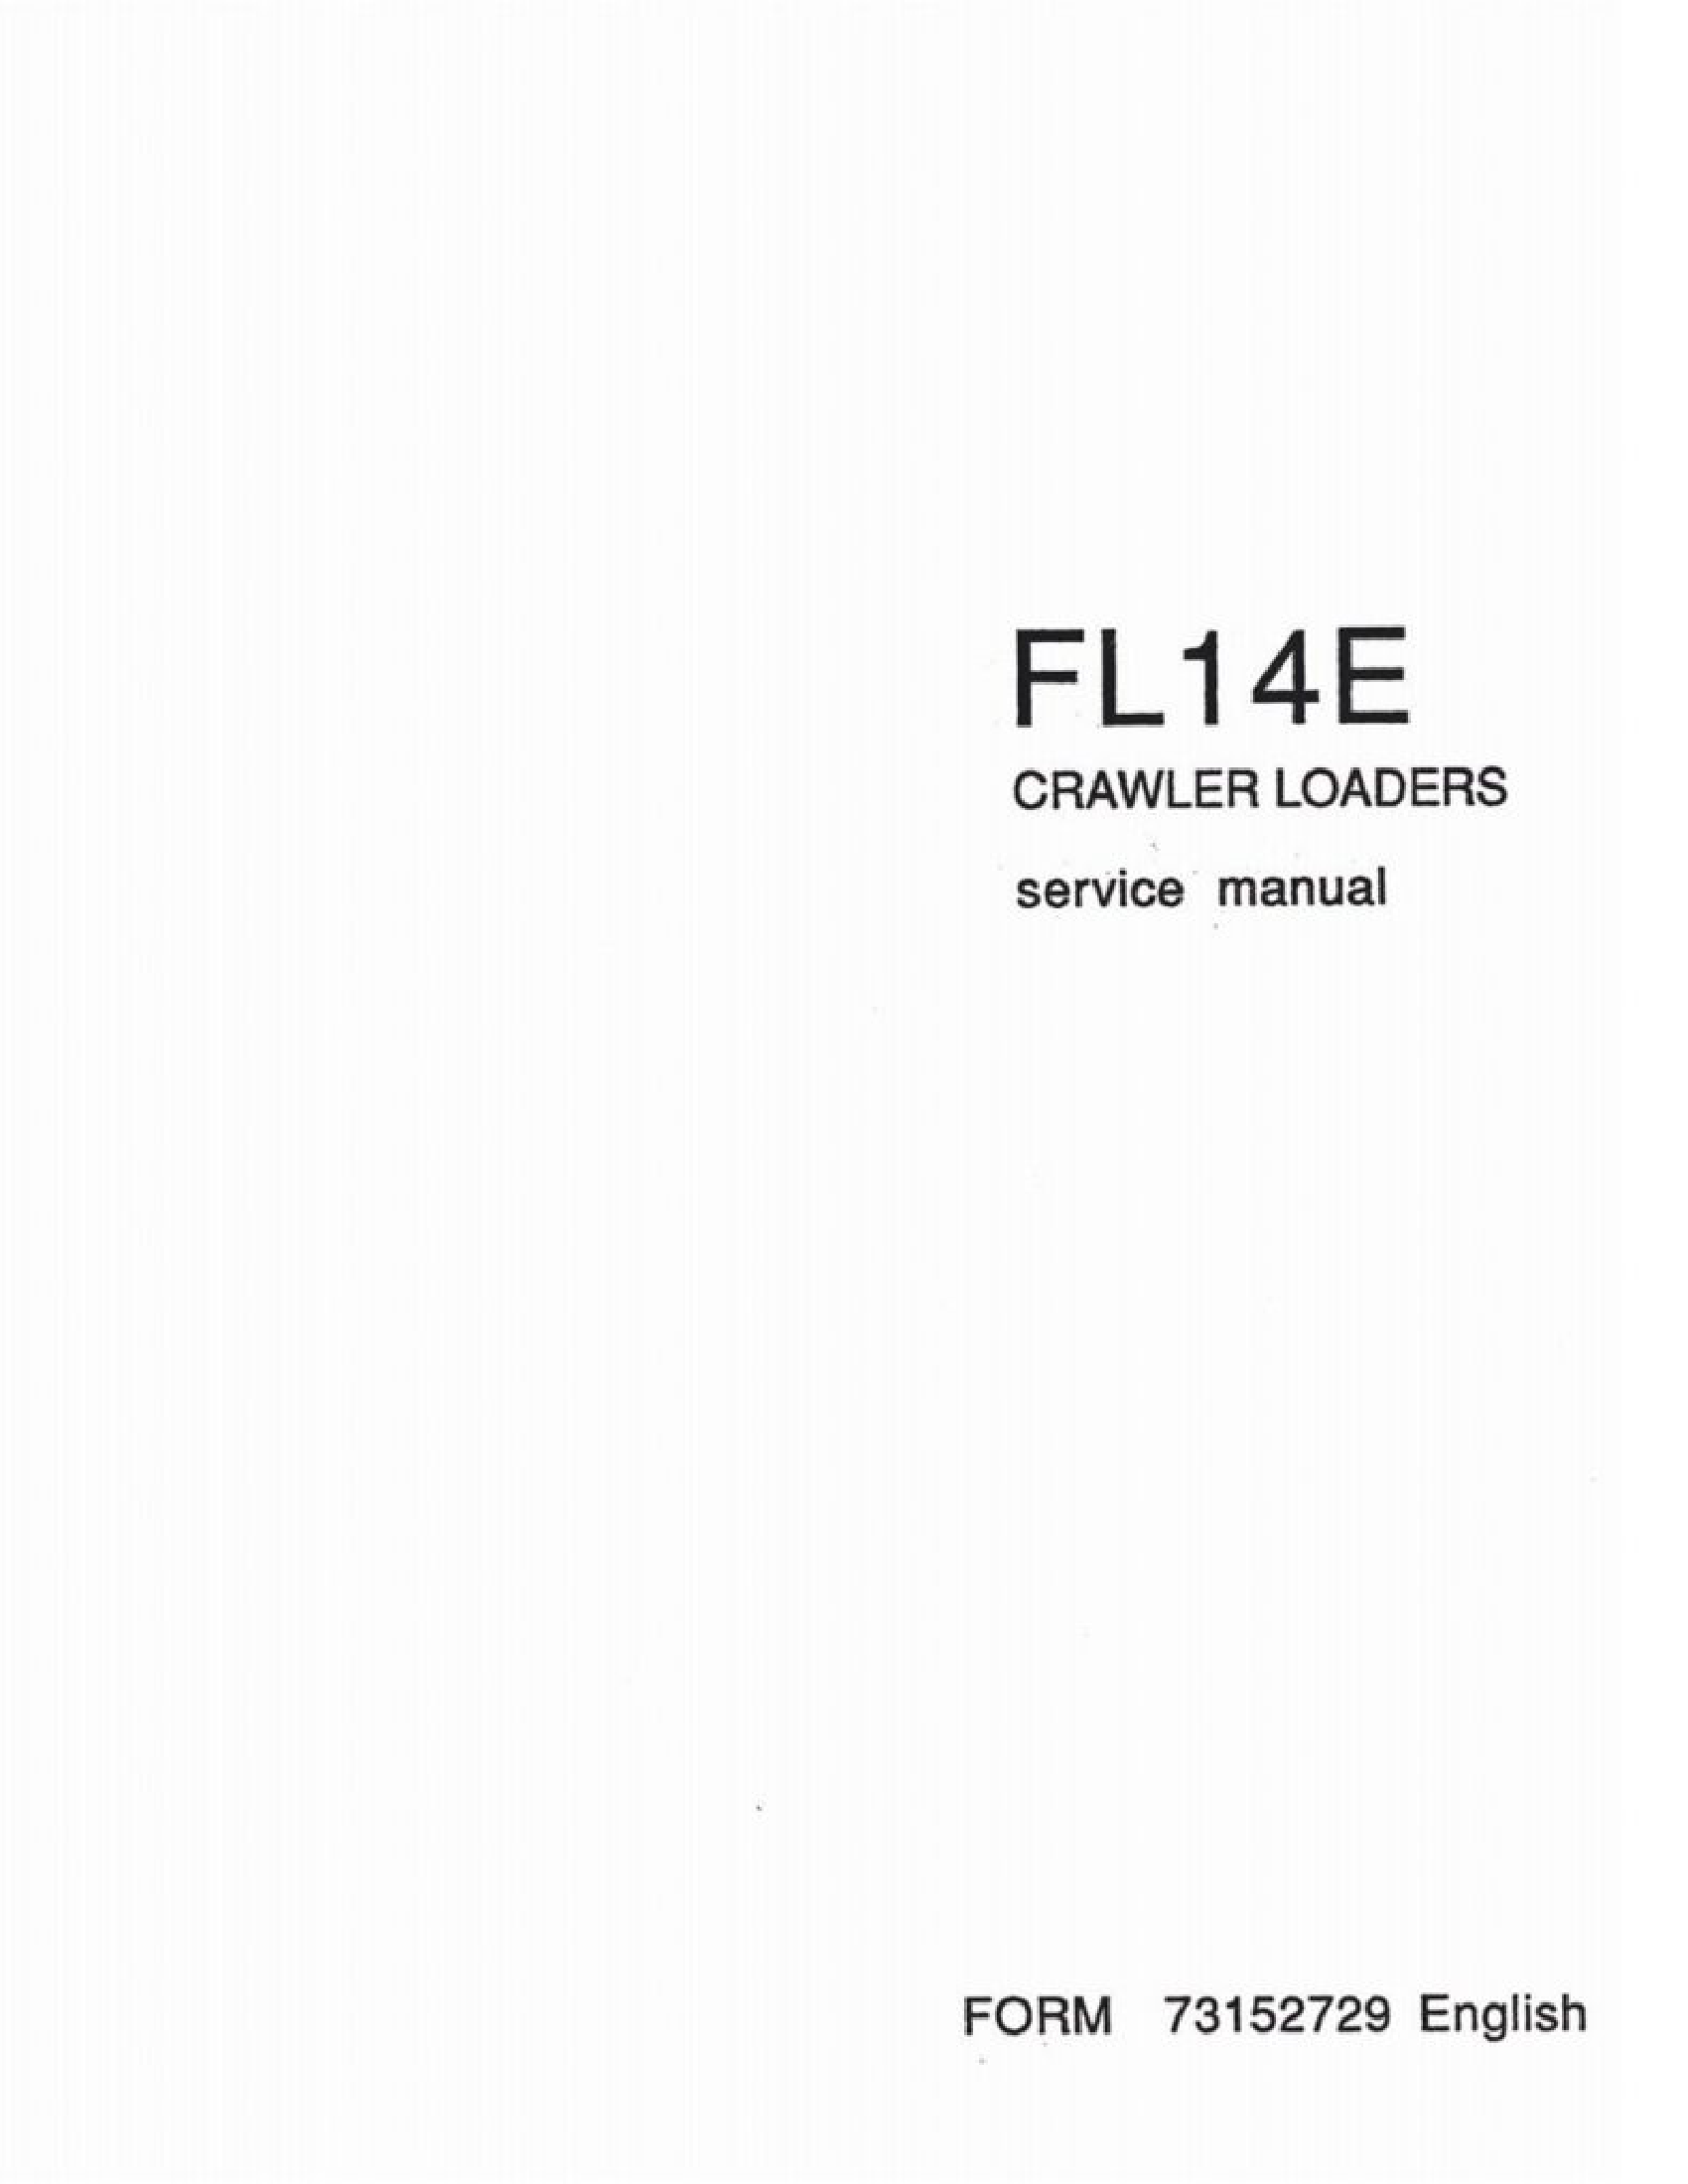 Fiat-Allis FL14E Crawler Loader manual